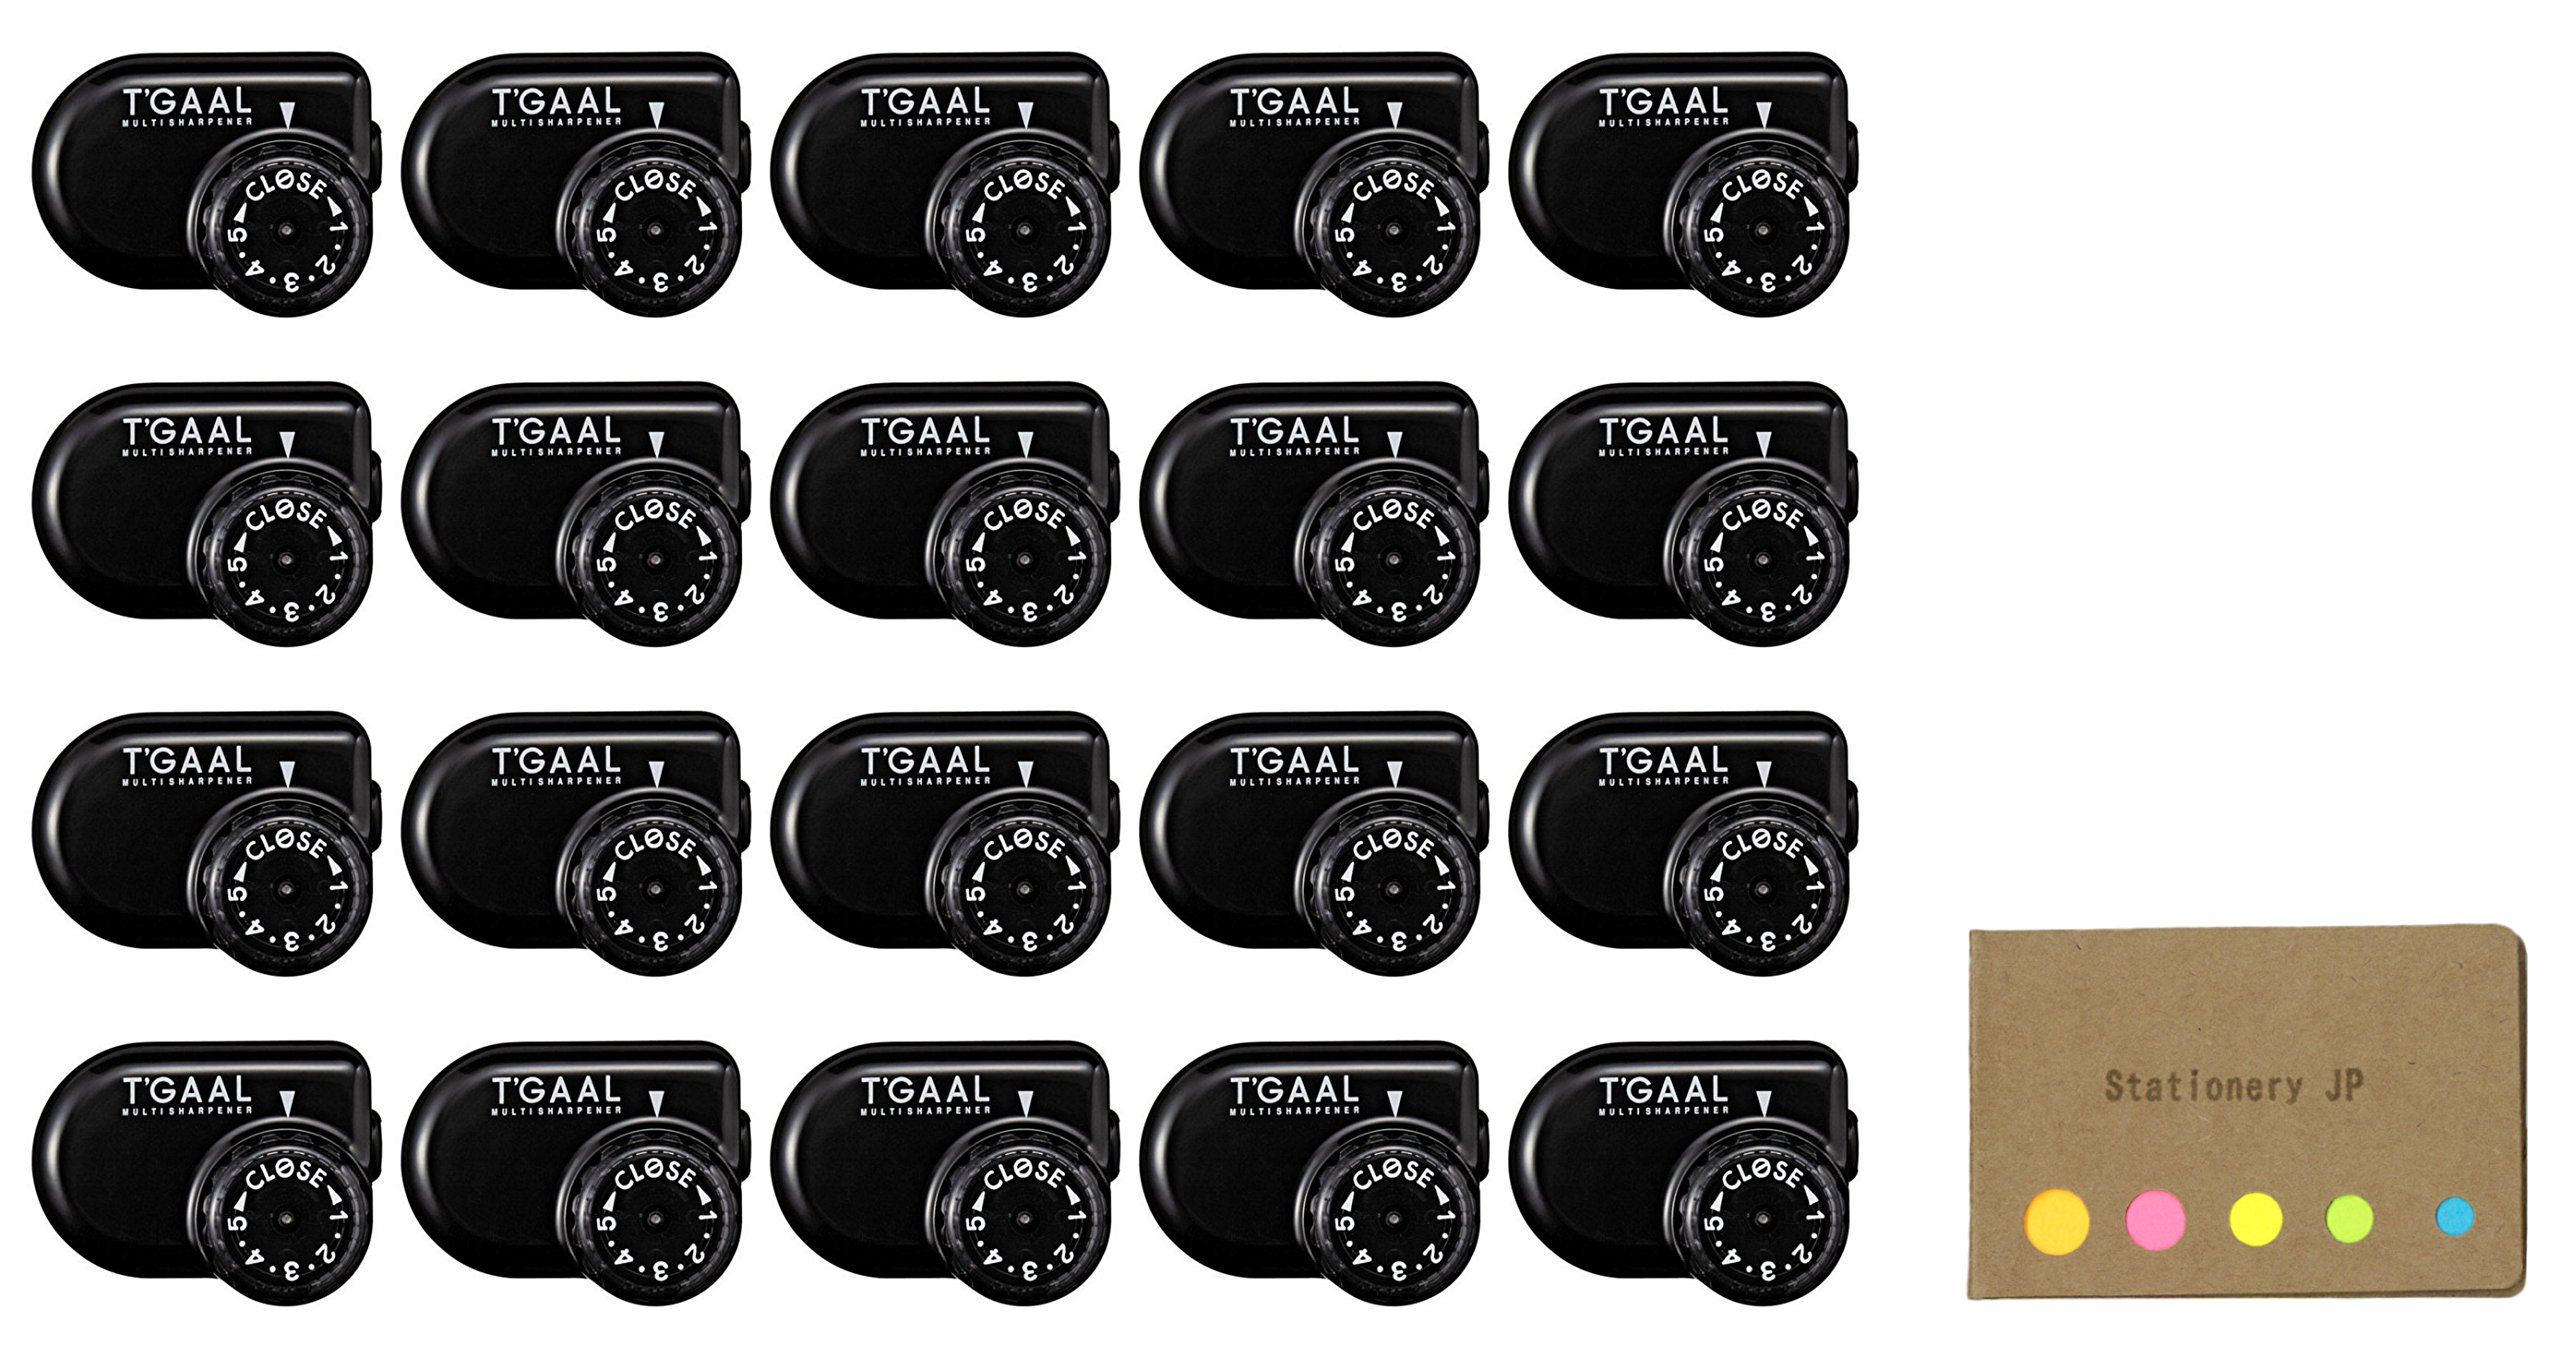 Kutsuwa STAD Angle Adjustable Pencil Sharpener T'GAAL, Black, 20-pack, Sticky Notes Value Set by Stationery JP